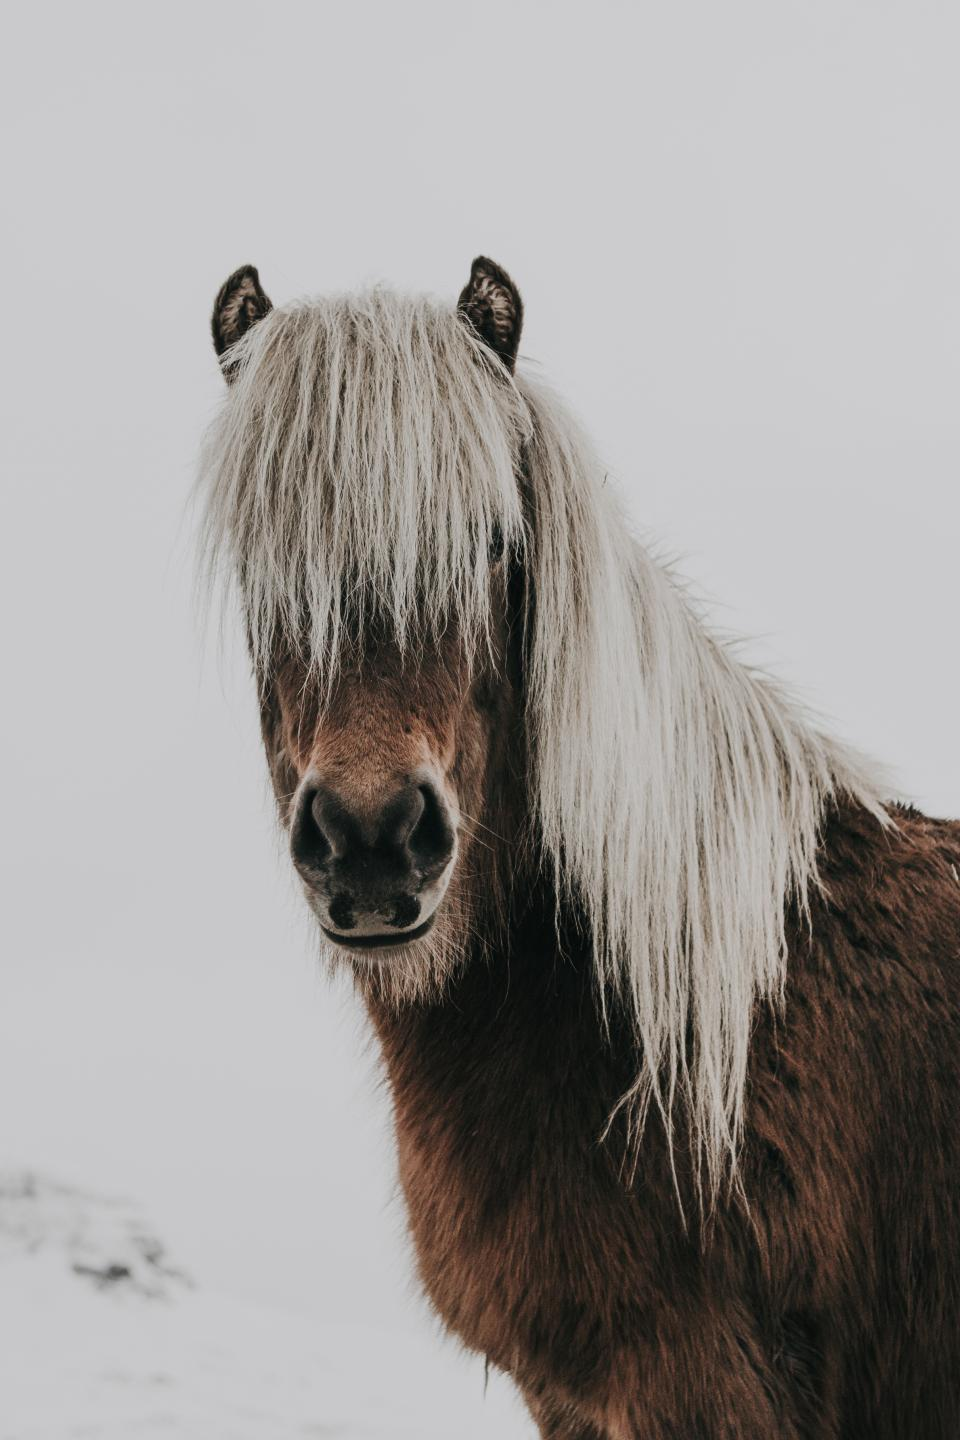 horse animal brown white snow winter cold weather hair